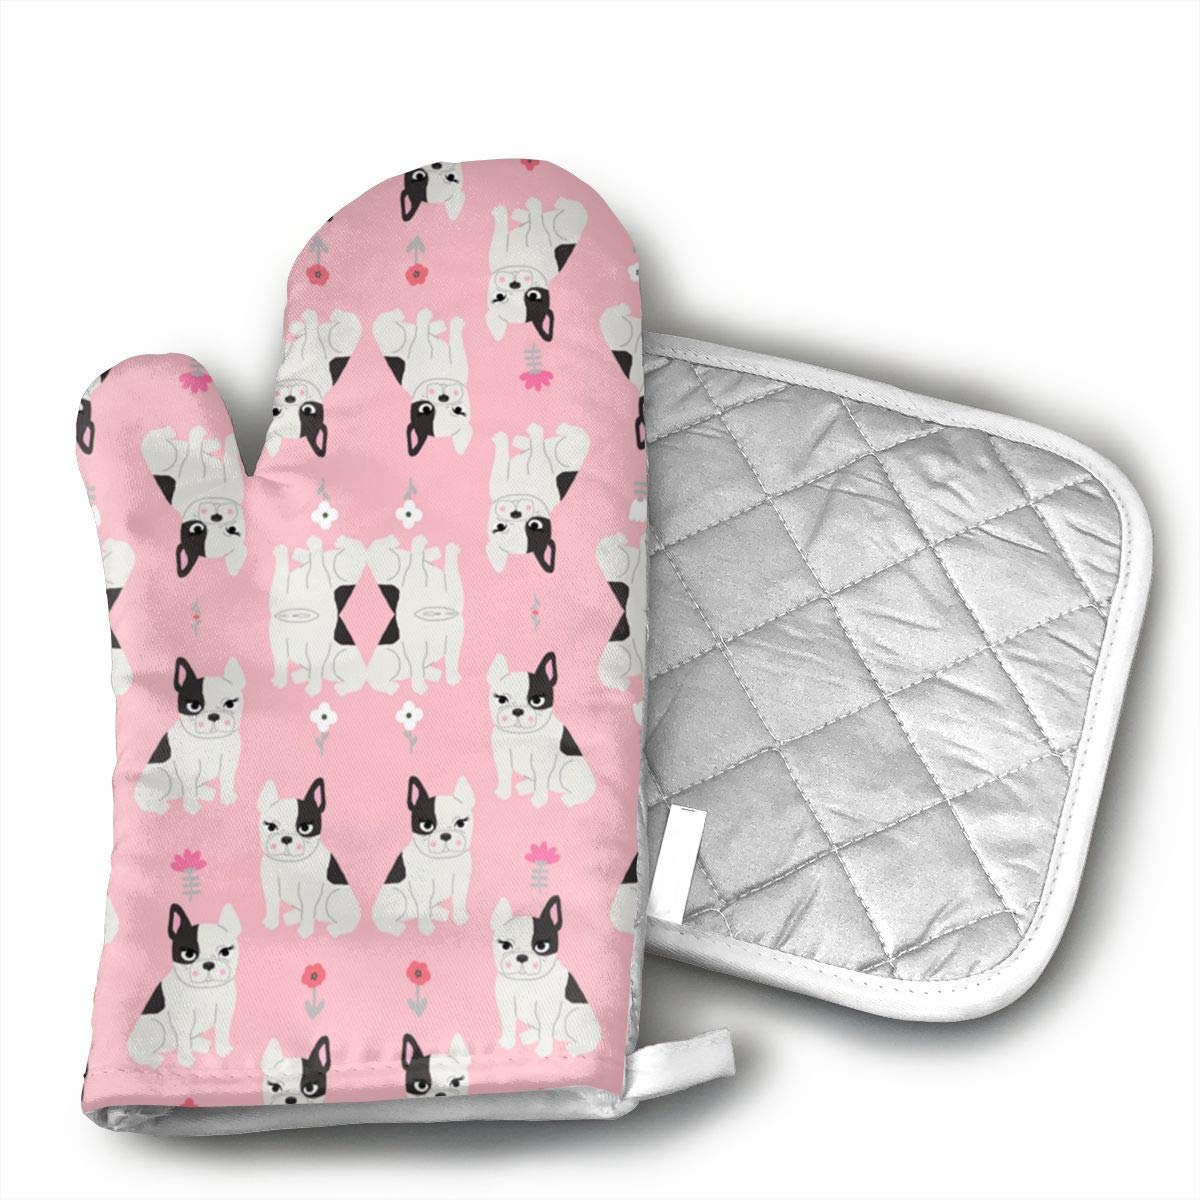 UYRHFS Frenchie Quilt French Bulldog Pink and Grey Cheate Oven Mitts and Pot Holder Kitchen Set with, Heat Resistant, Oven Gloves and Pot Holders 2pcs Set for BBQ Cooking Baking